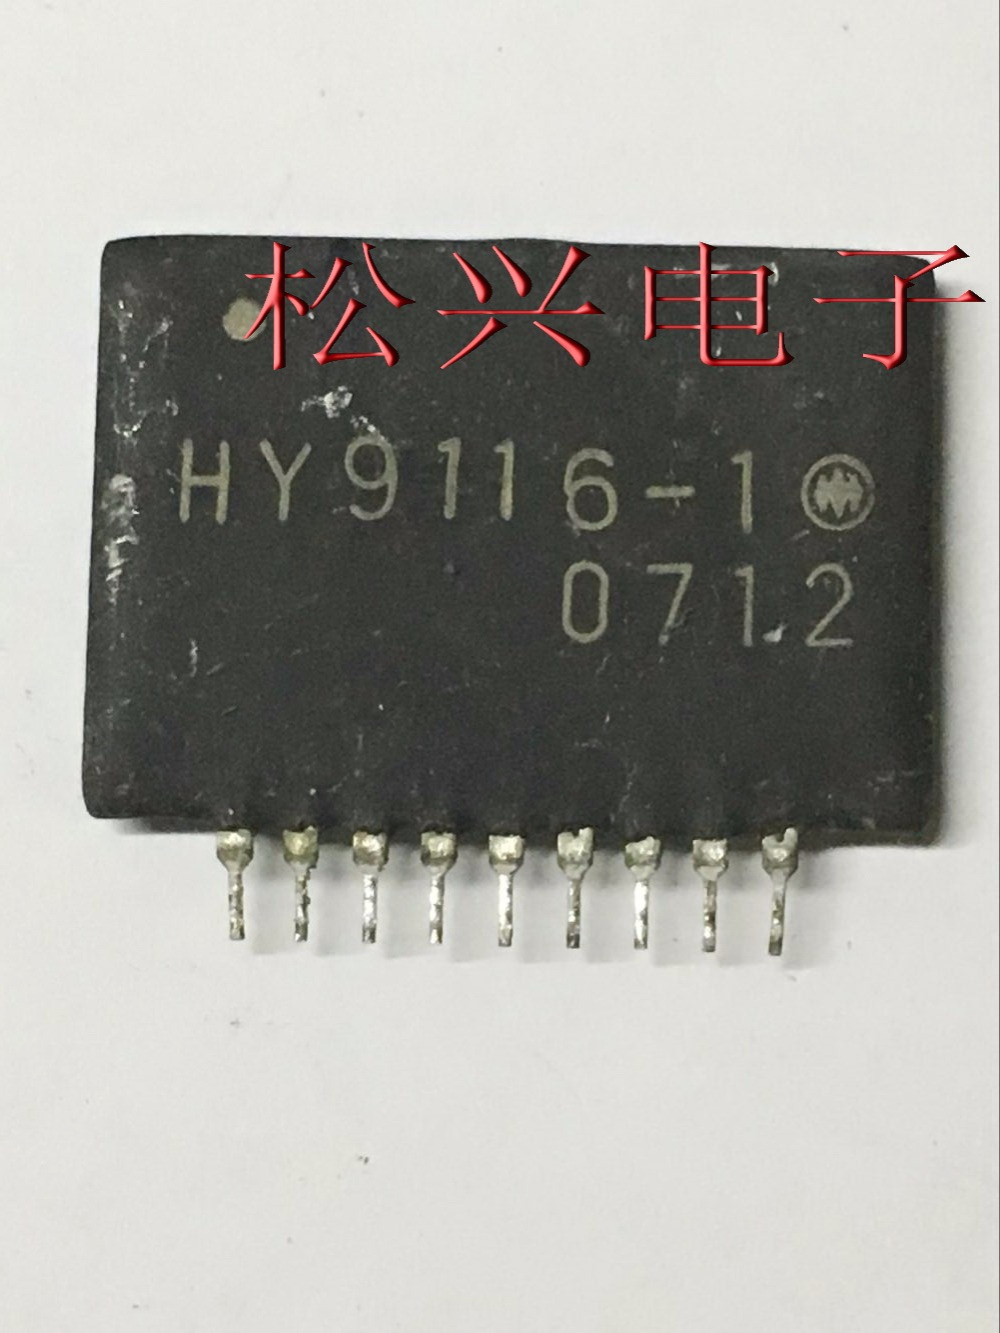 Quality assurance HY9116-1 9pin ceramic module stk4026 rear projection convergence power amplifier module stk4026ii quality assurance stk4026